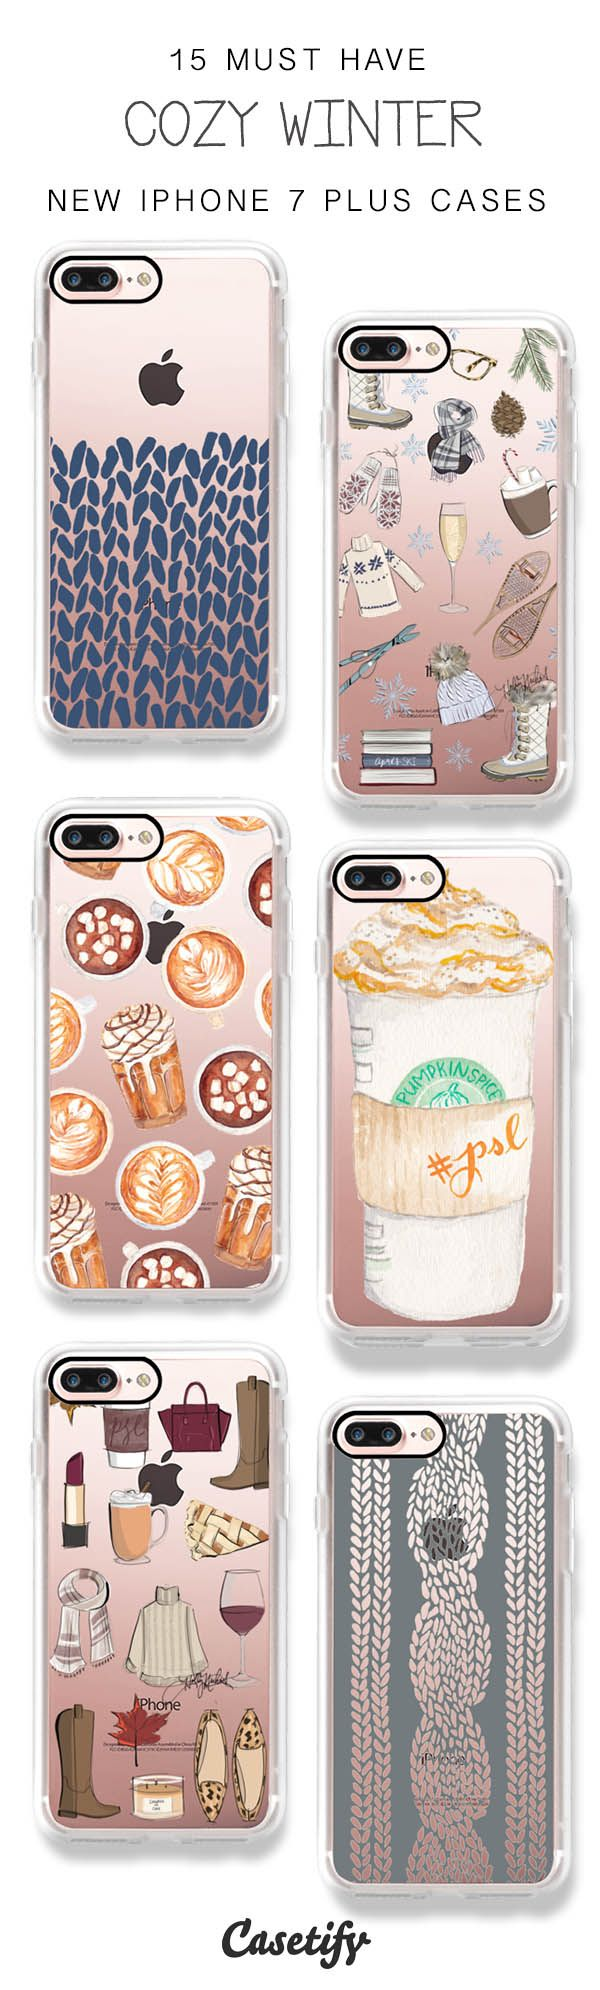 Get Ready for Winter! 15 Must Have Winter Fashionista iPhone 7 / iPhone 7 Plus Phone Cases here >  https://www.casetify.com/artworks/KWU2kRkfbi